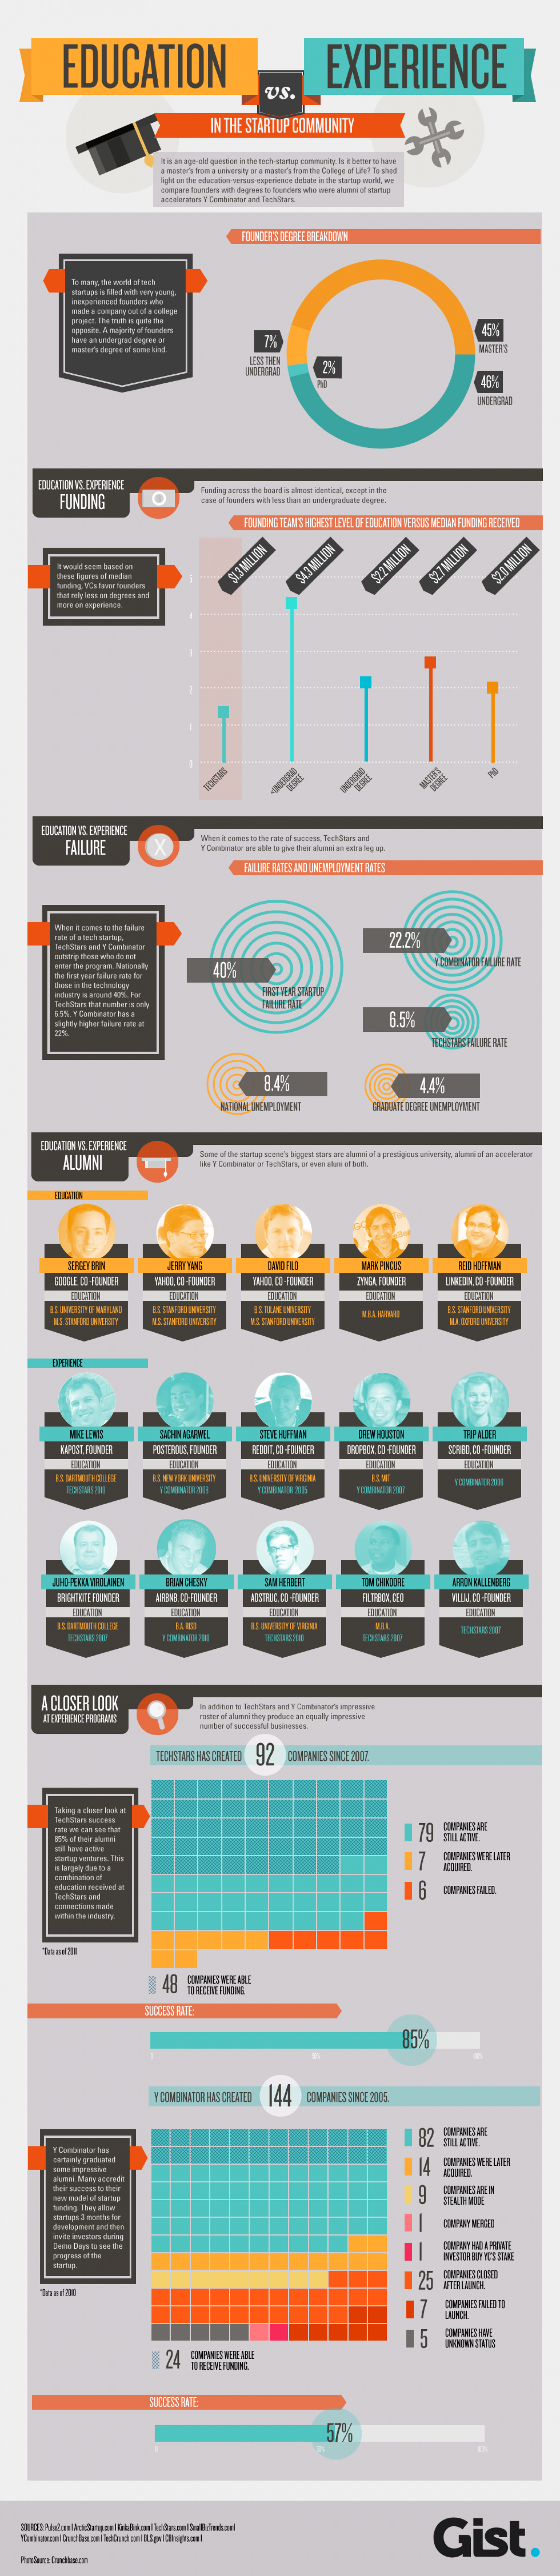 New York City Start Up Office Space Infographic